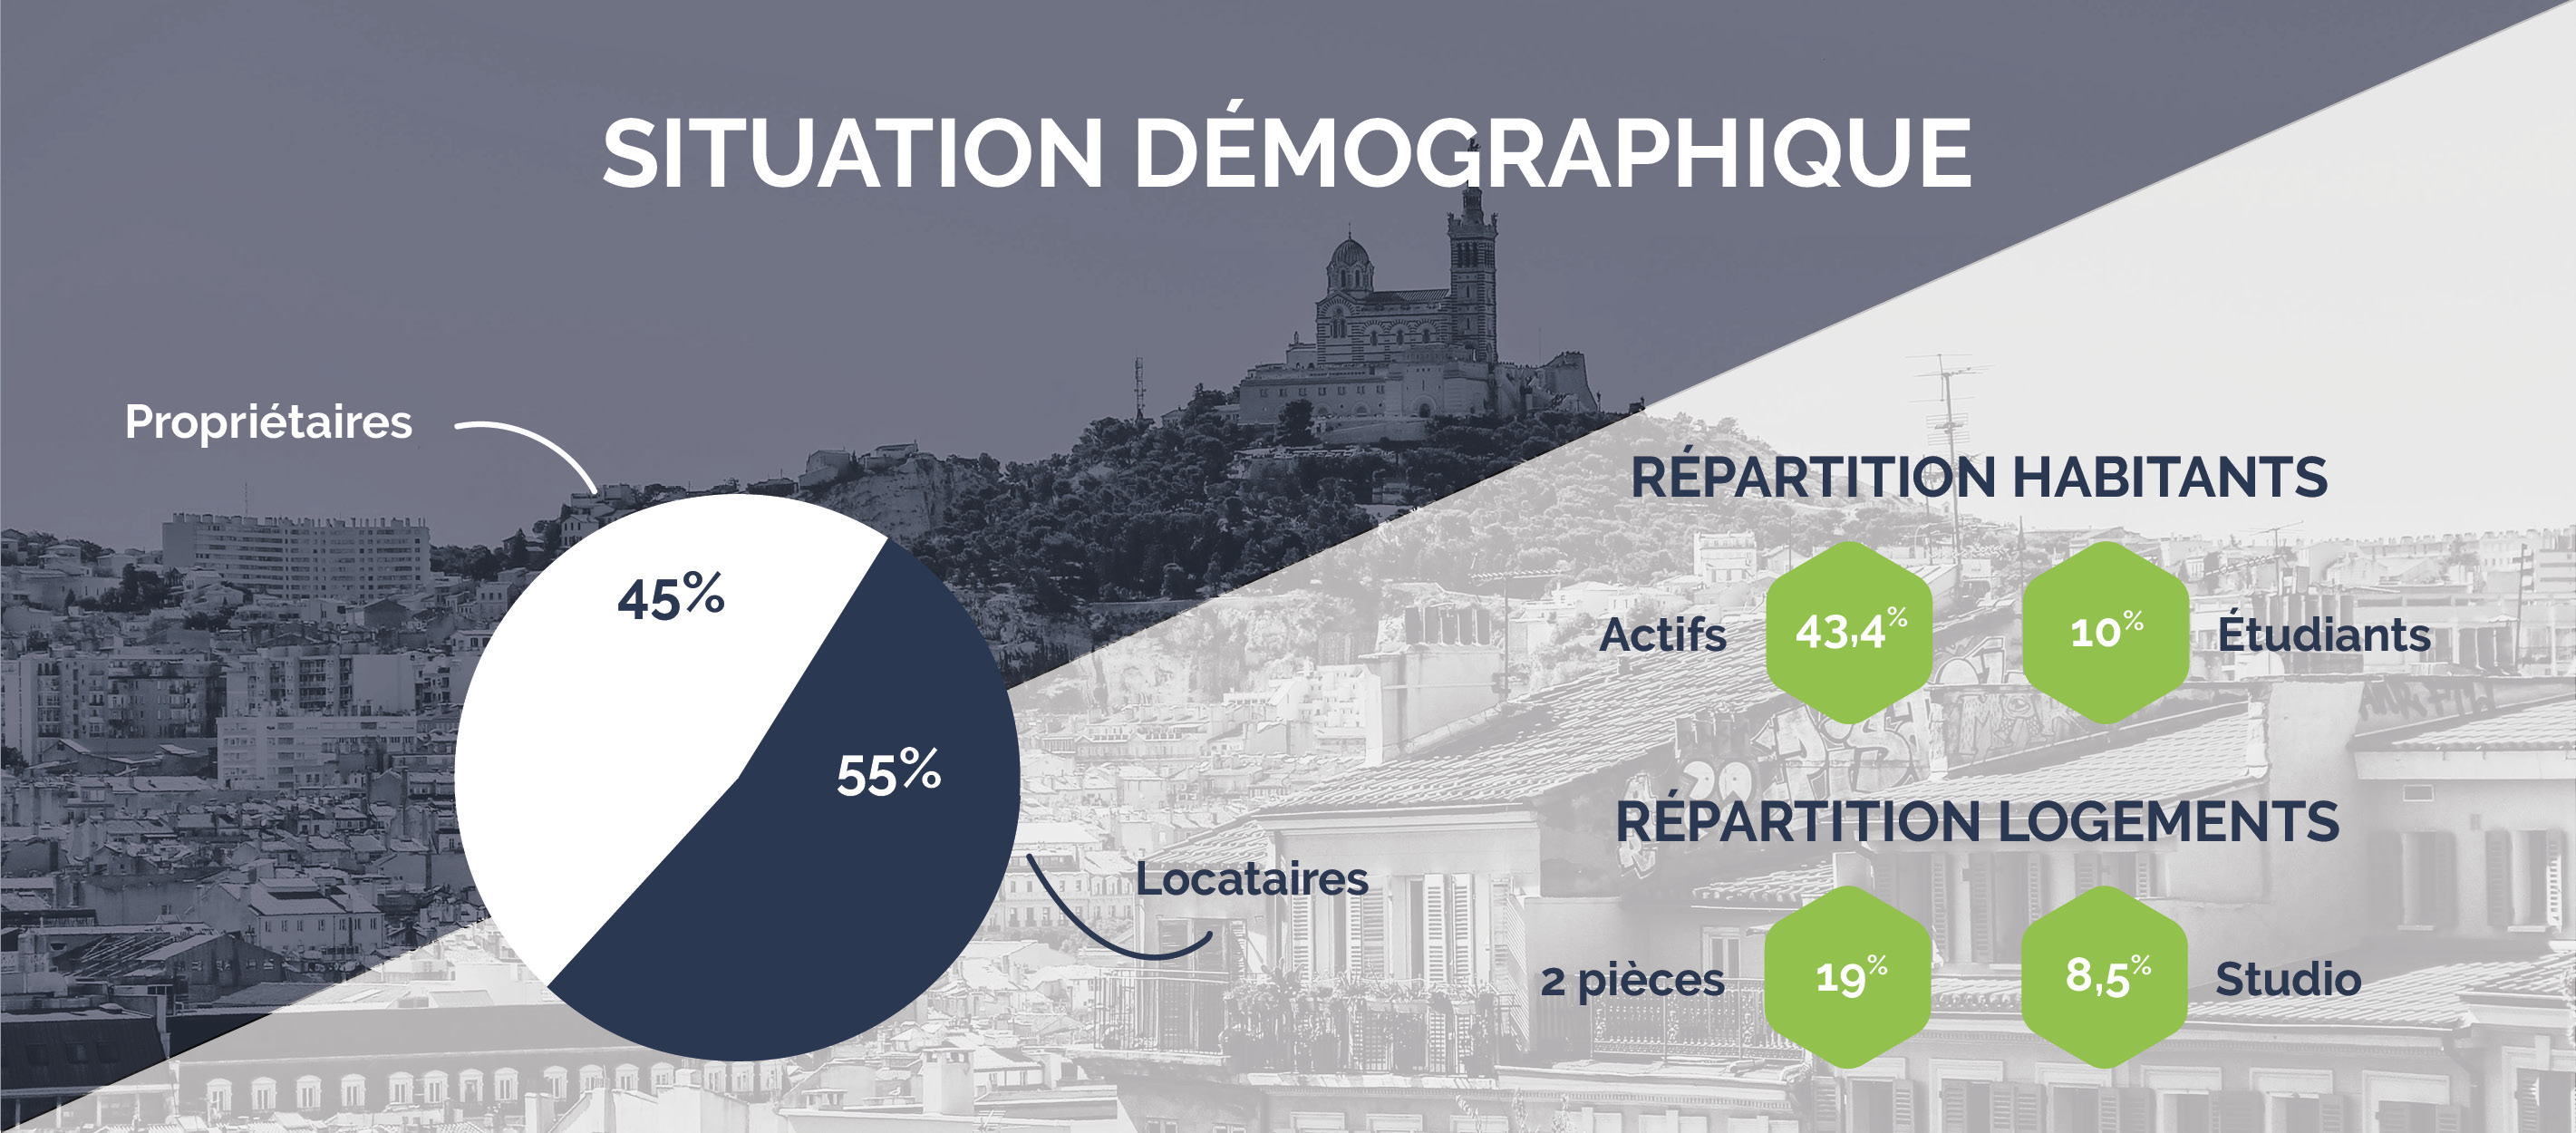 MARSEILLE_SITUATION DEMOGRAPHIQUE-1